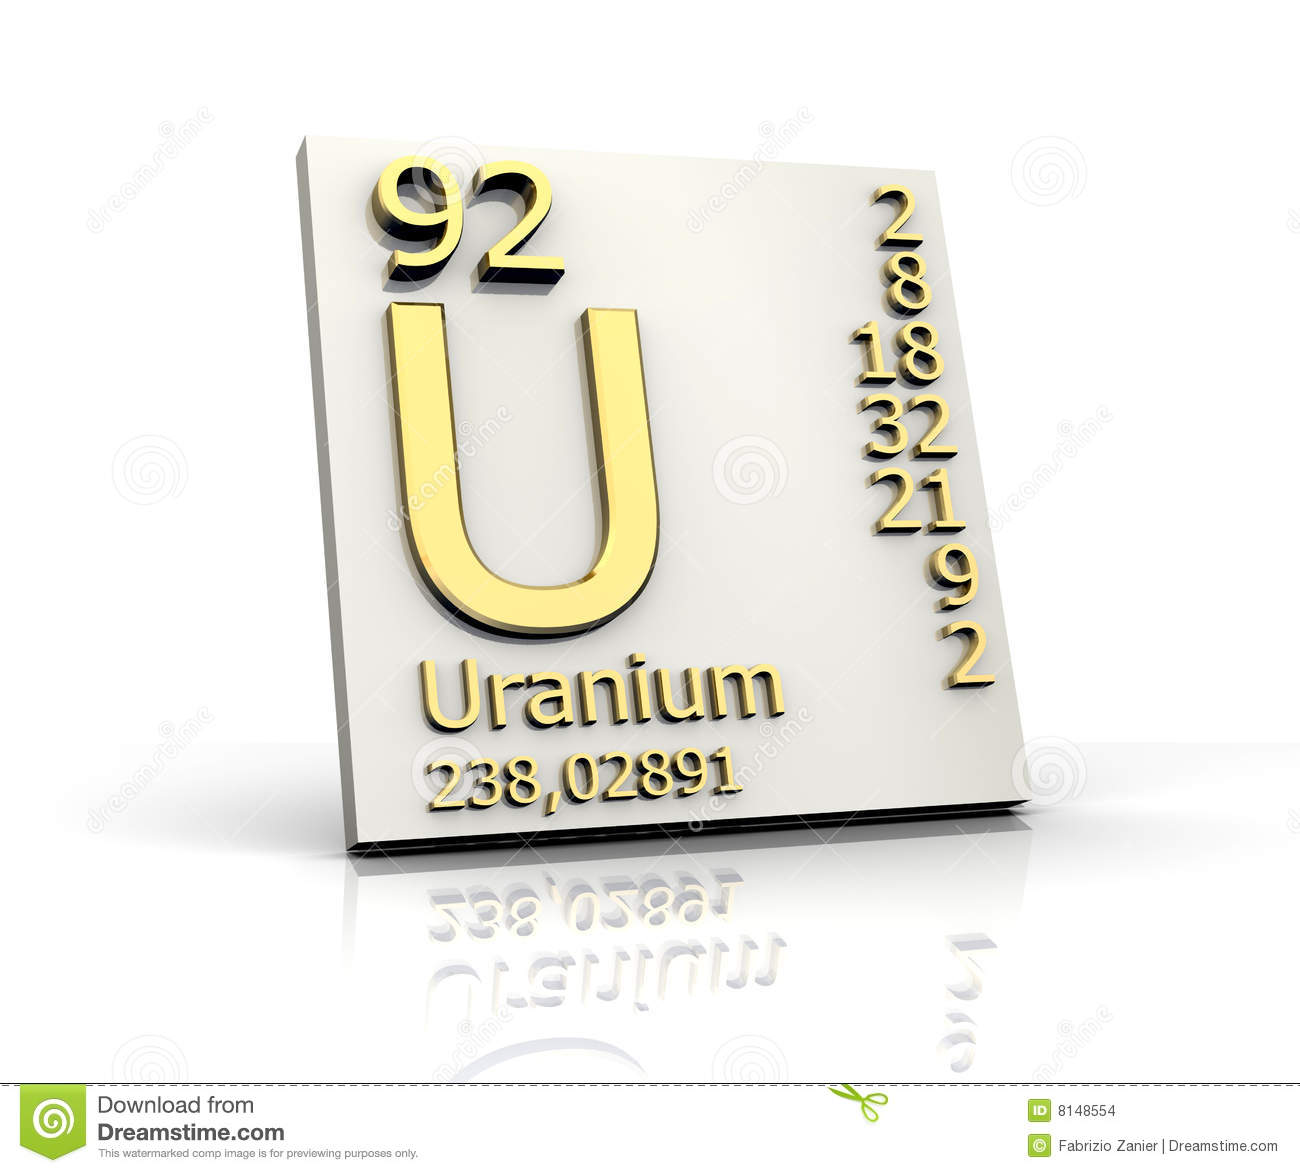 Uranium form periodic table of elements stock illustration image royalty free stock photo download uranium form periodic table gamestrikefo Image collections